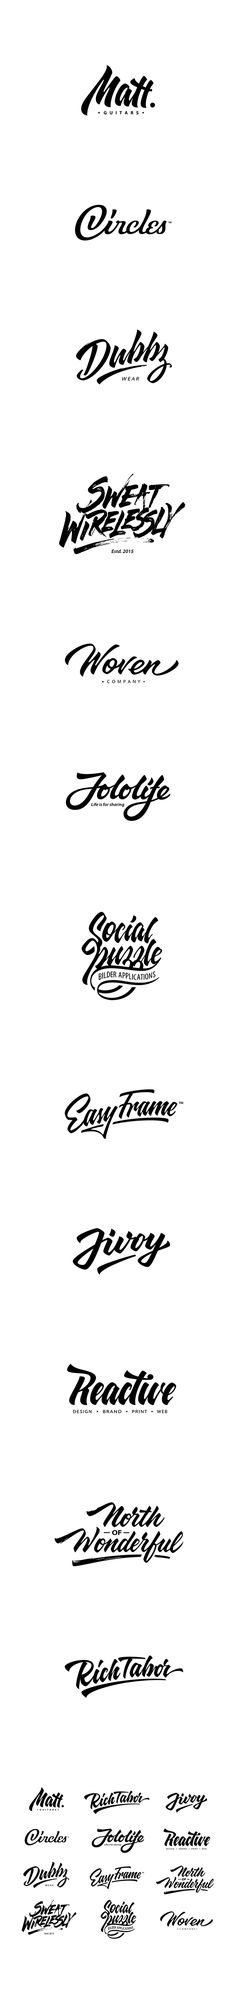 Typography Lettering logotypes compilation 2 on Behance Script Lettering, Typography Letters, Typography Logo, Lettering Design, Handwritten Logo, Typography Inspiration, Logo Design Inspiration, Logos Vintage, Calligraphy Words